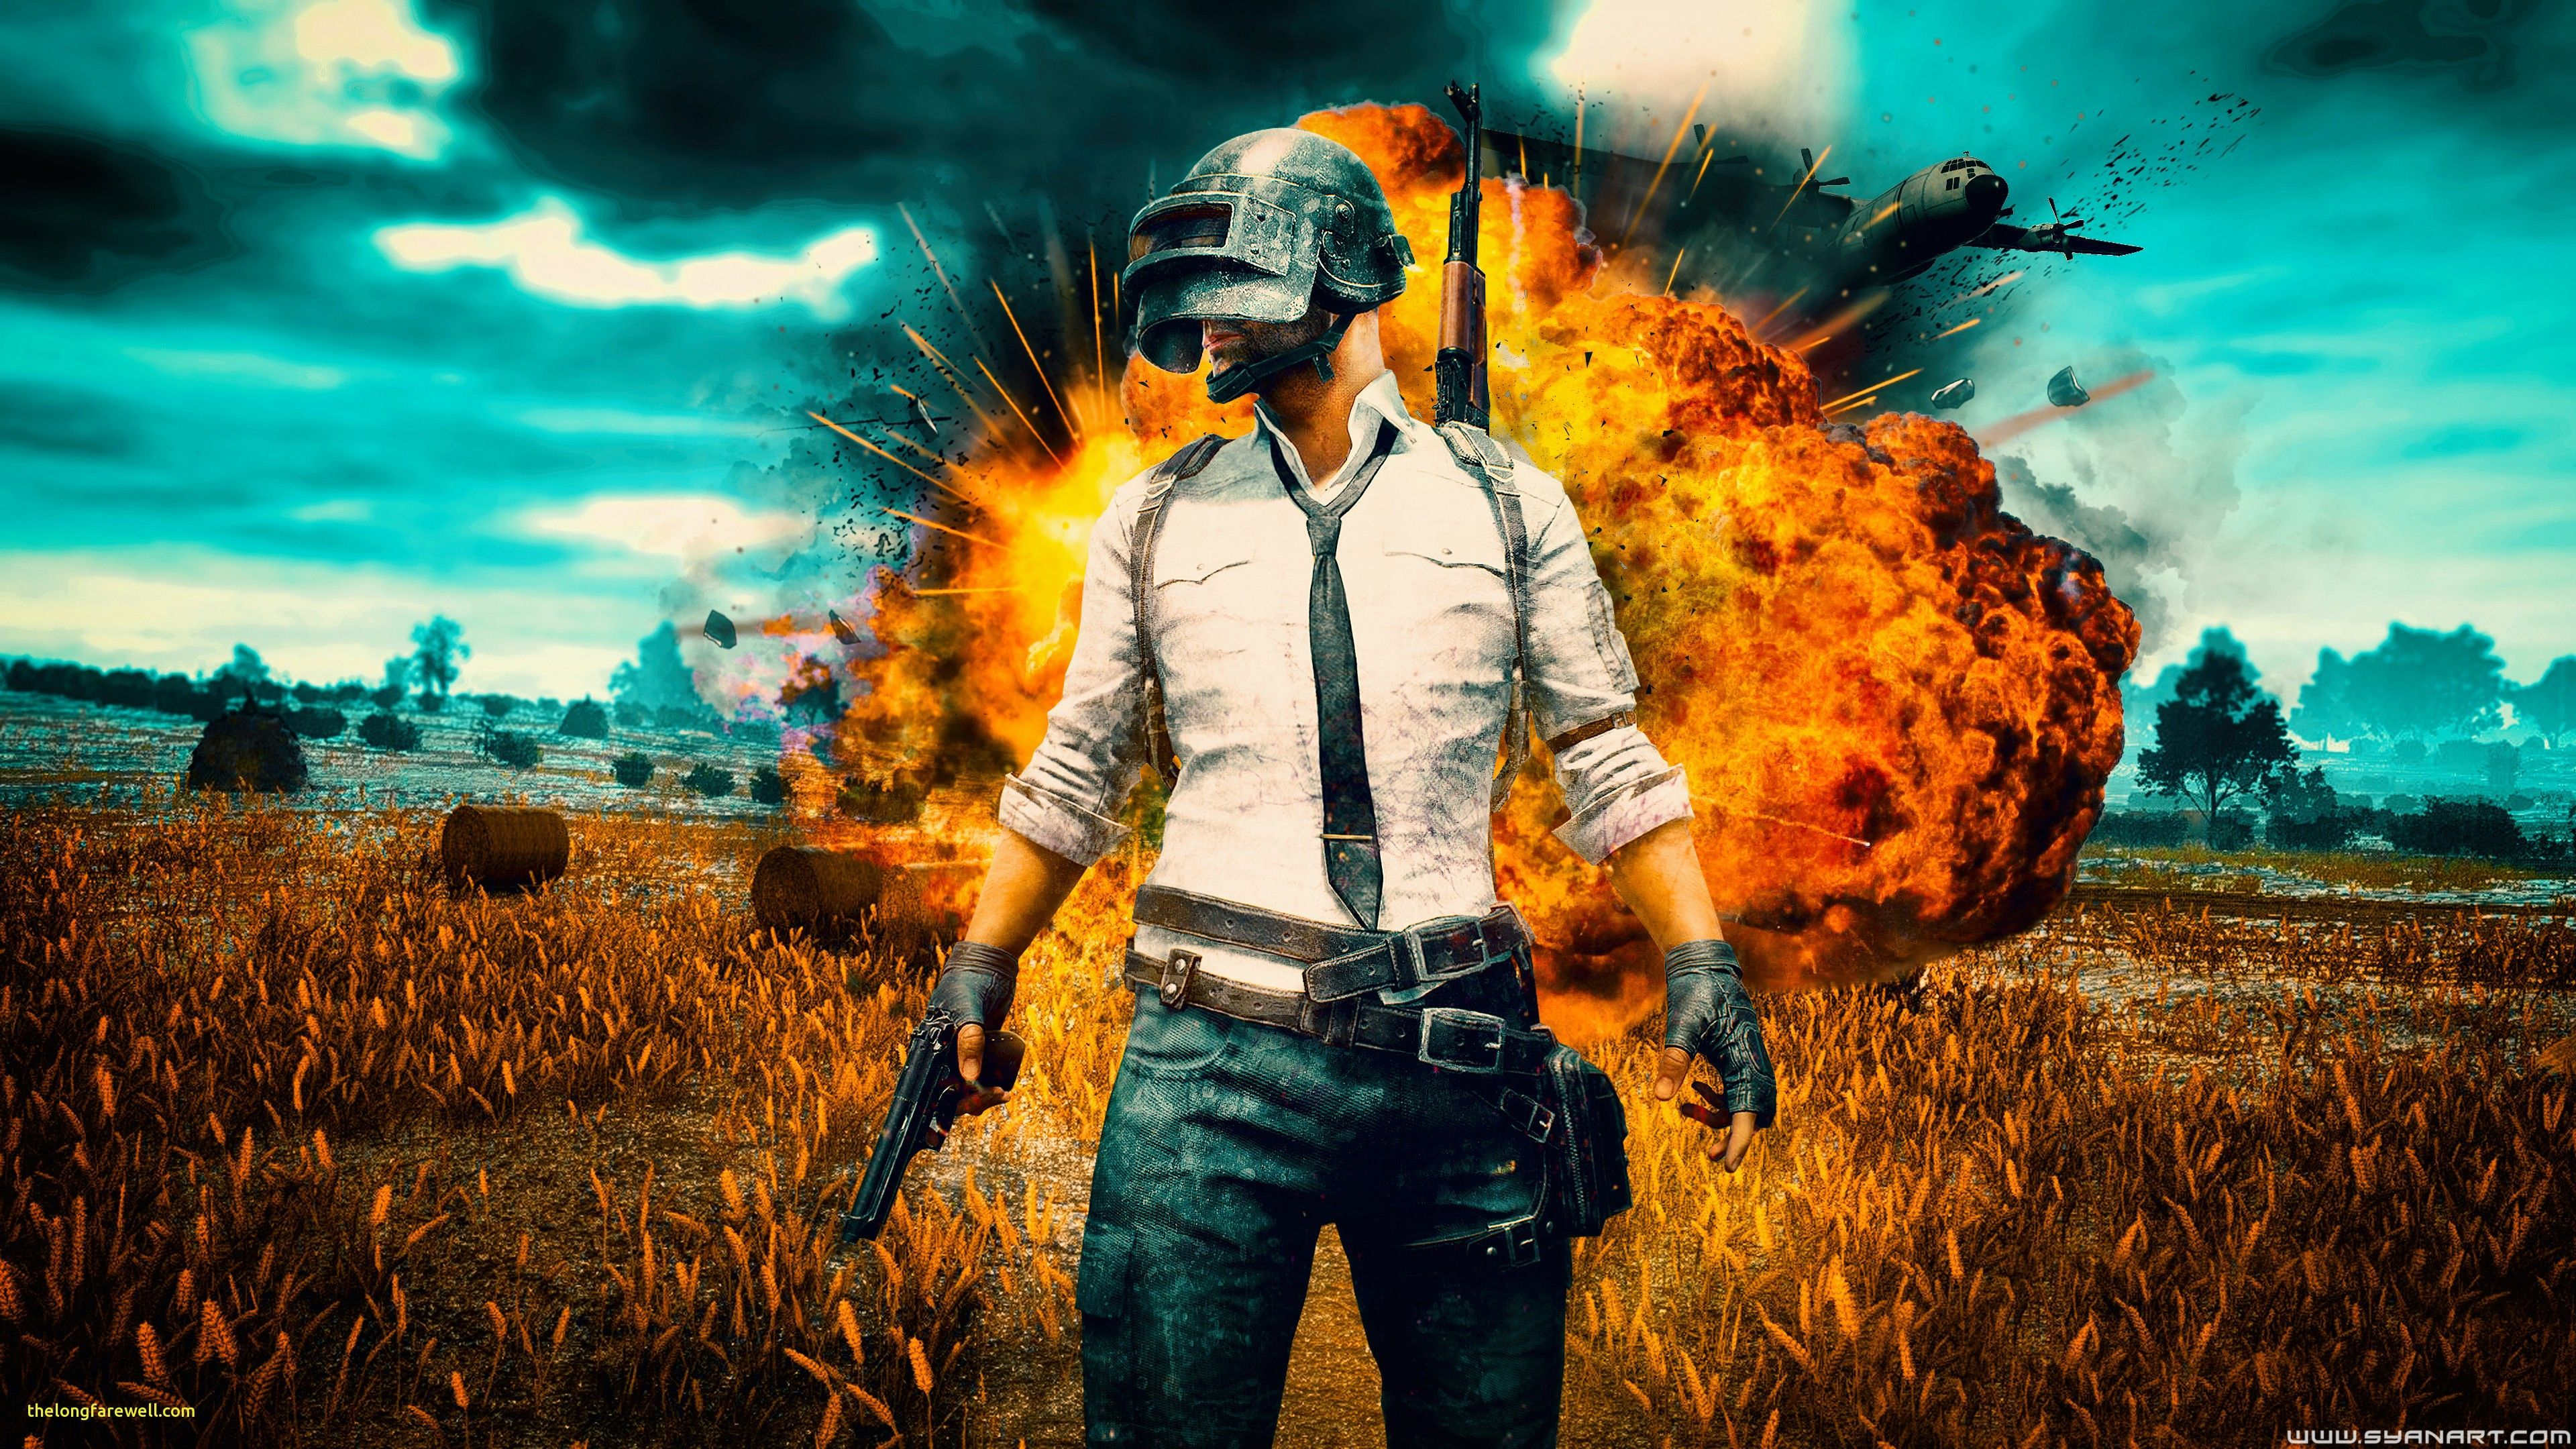 Download 63+ Wallpaper Pubg Hd Hp Foto HD Paling Keren